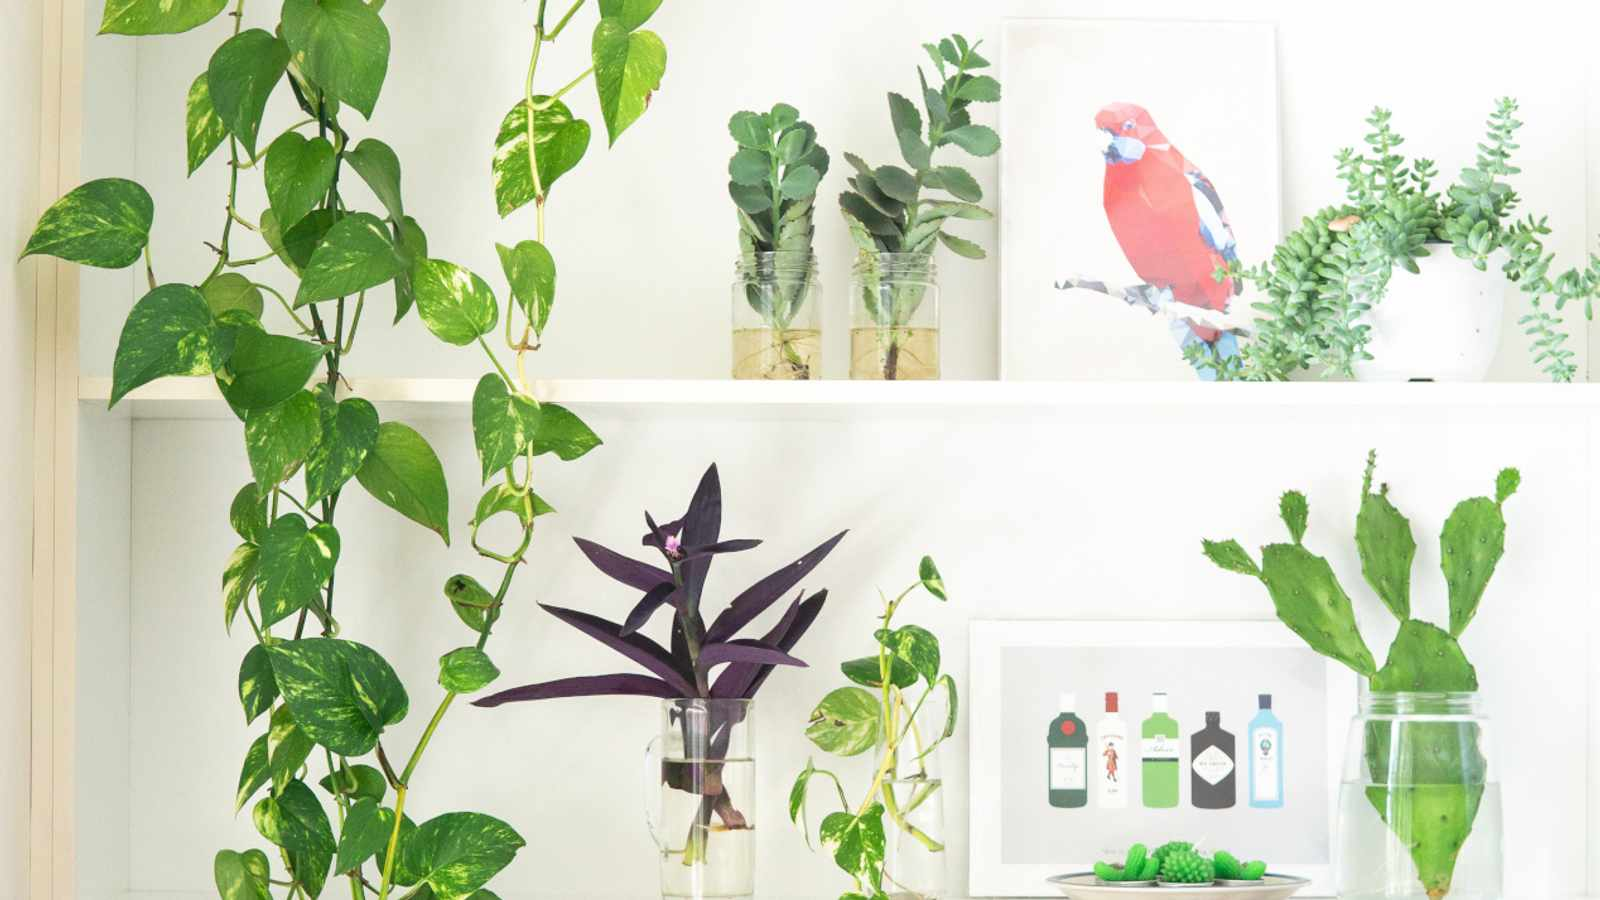 3 Sustainable gardening tips to try out